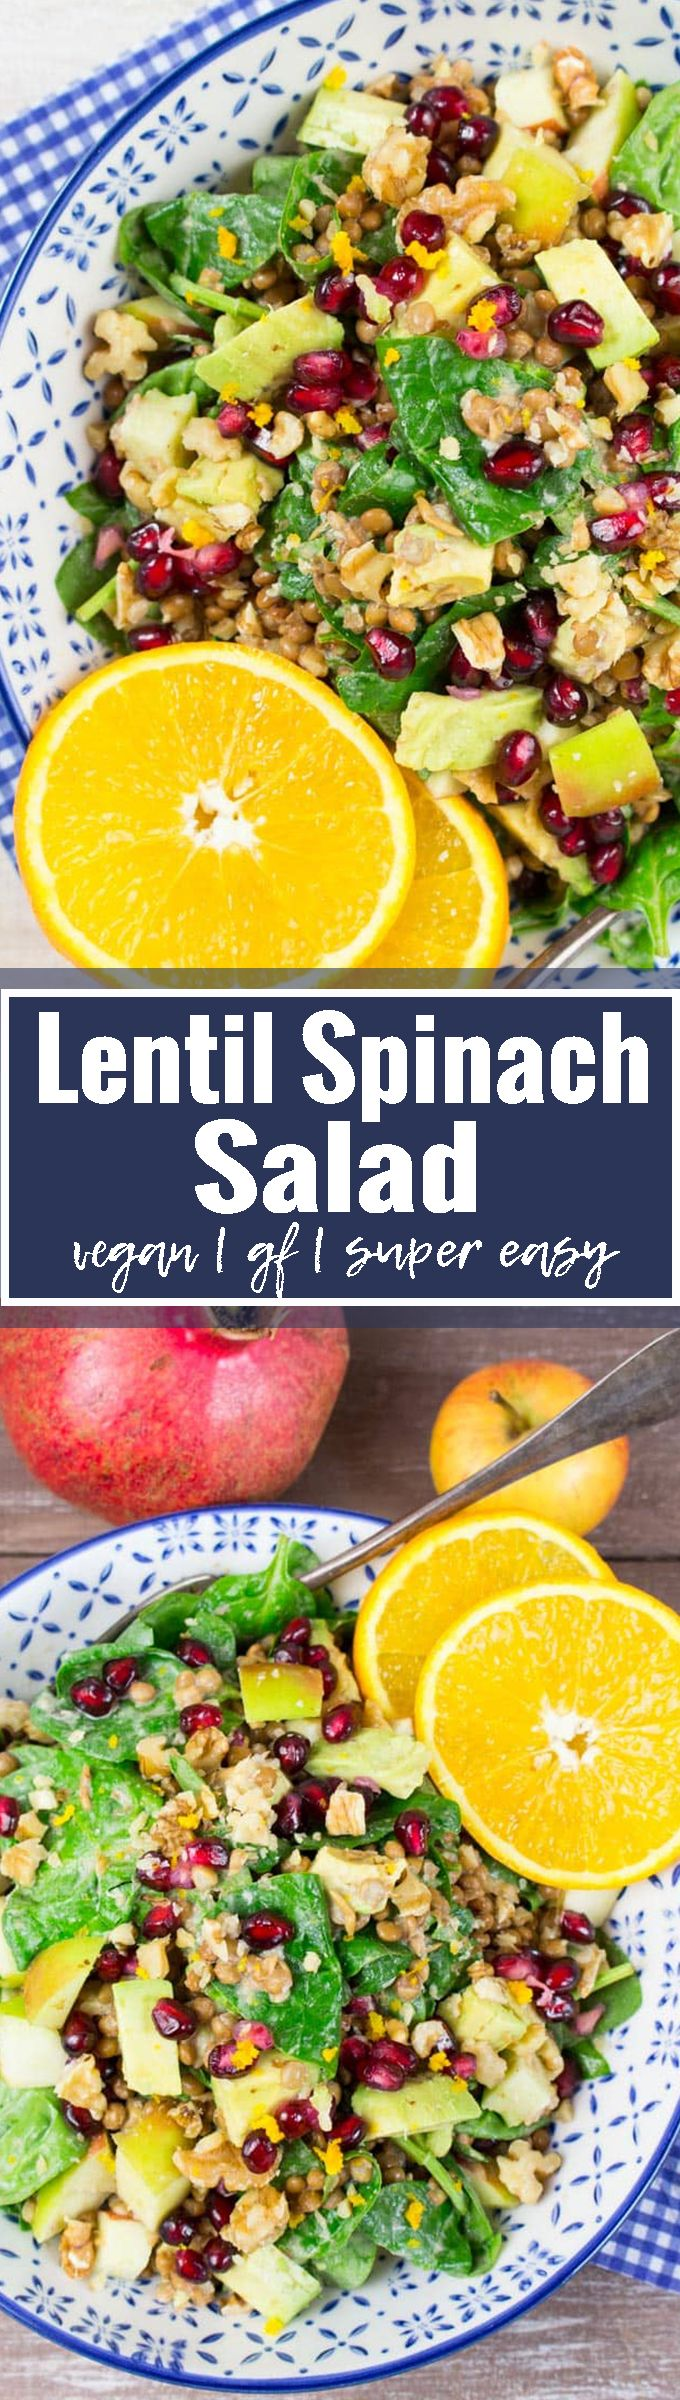 This lentil spinach salad is one of my favorite vegan dinner recipes! It's super easy to make, gluten-free, and so delicious! And it's such a healthy vegan salad packed with protein and vitamins. Perfect for picnics and potlucks. <3   veganheaven.org